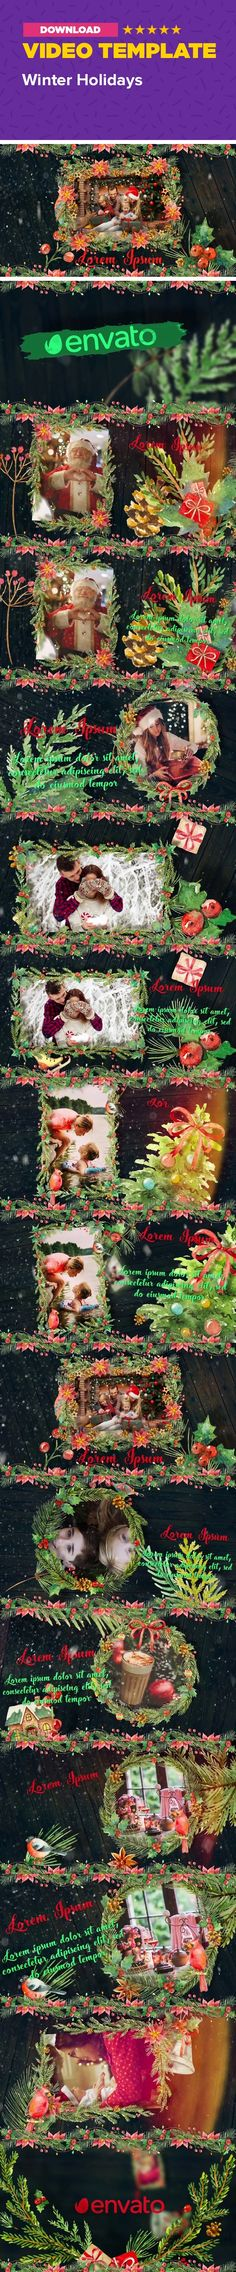 christmas, gallery, gifts, greetings, happiness, happy new year, holiday, illustrations, memories, miracle, photos, santa, slideshow, winter Winter Holidays is a great holiday after effects slideshow template with Christmas mood! This project has camera flying structure and and color control. It's easy to customize just drag and drop your pictures/footages, edit text, change colors and hit render. No plug-ins required!   Please note: audio is not included, you can download it here…